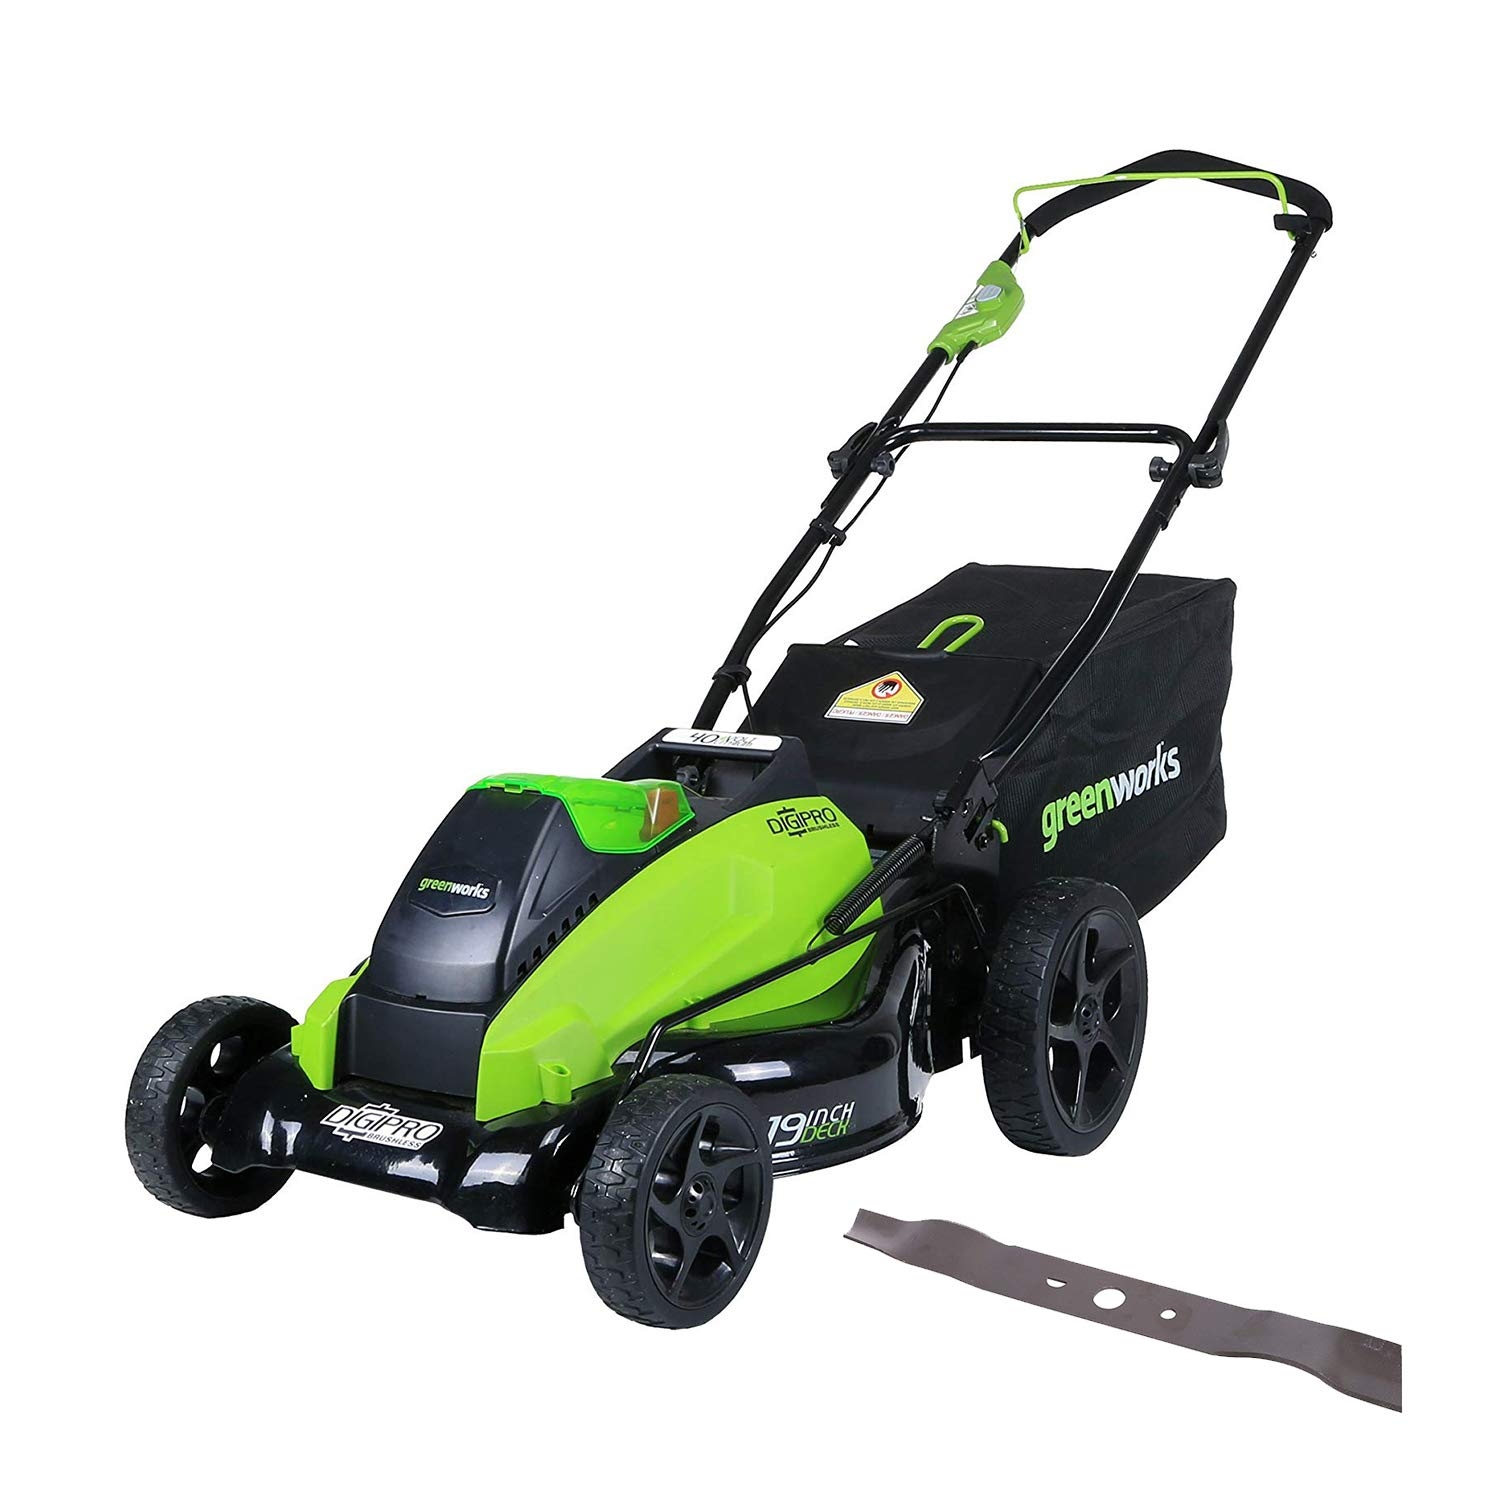 GreenWorks 19-Inch 40V Cordless Lawn Mower Extra Blade, Battery Charger Not Included 2519002AZ